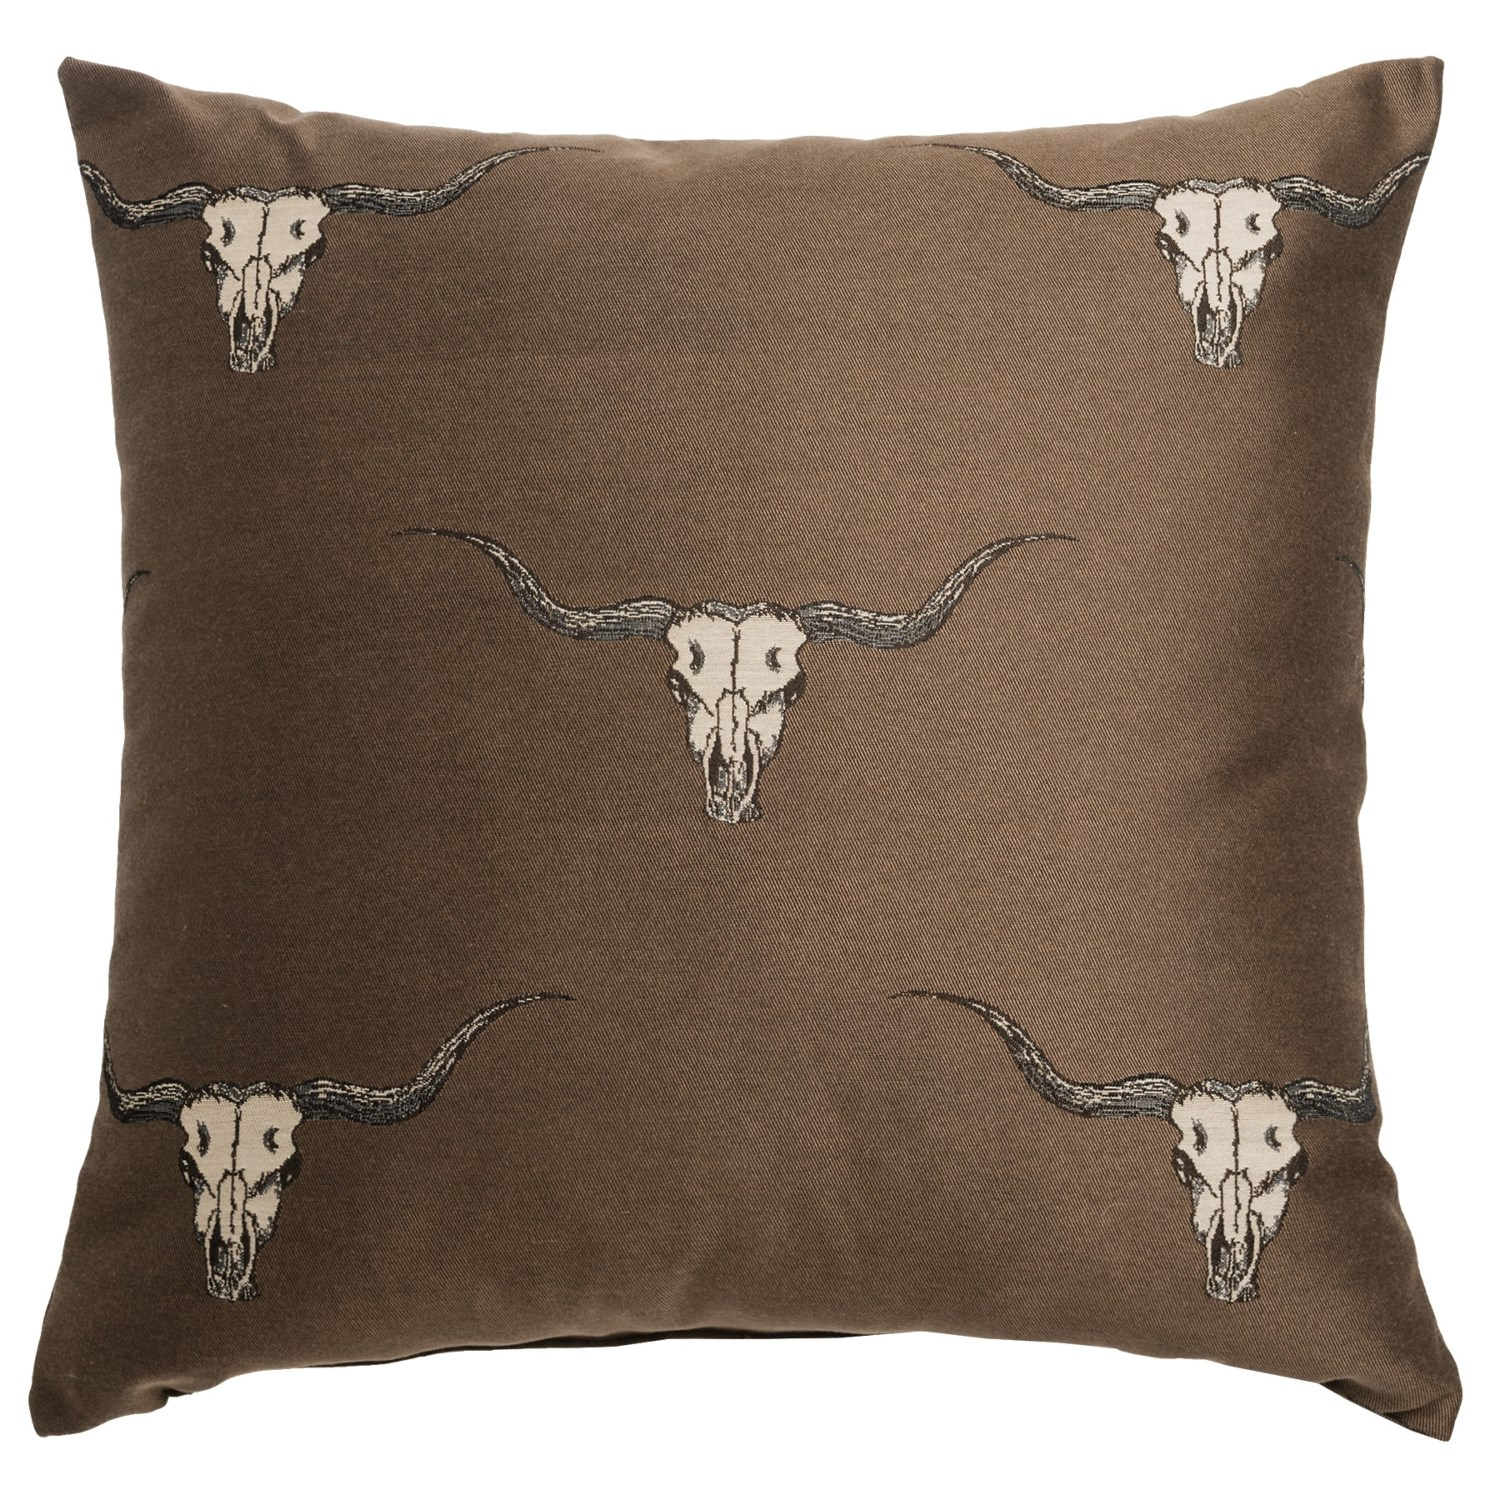 Canaan Stampede Decorative Pillow - 24x24?, Feather-Down - Save 50%